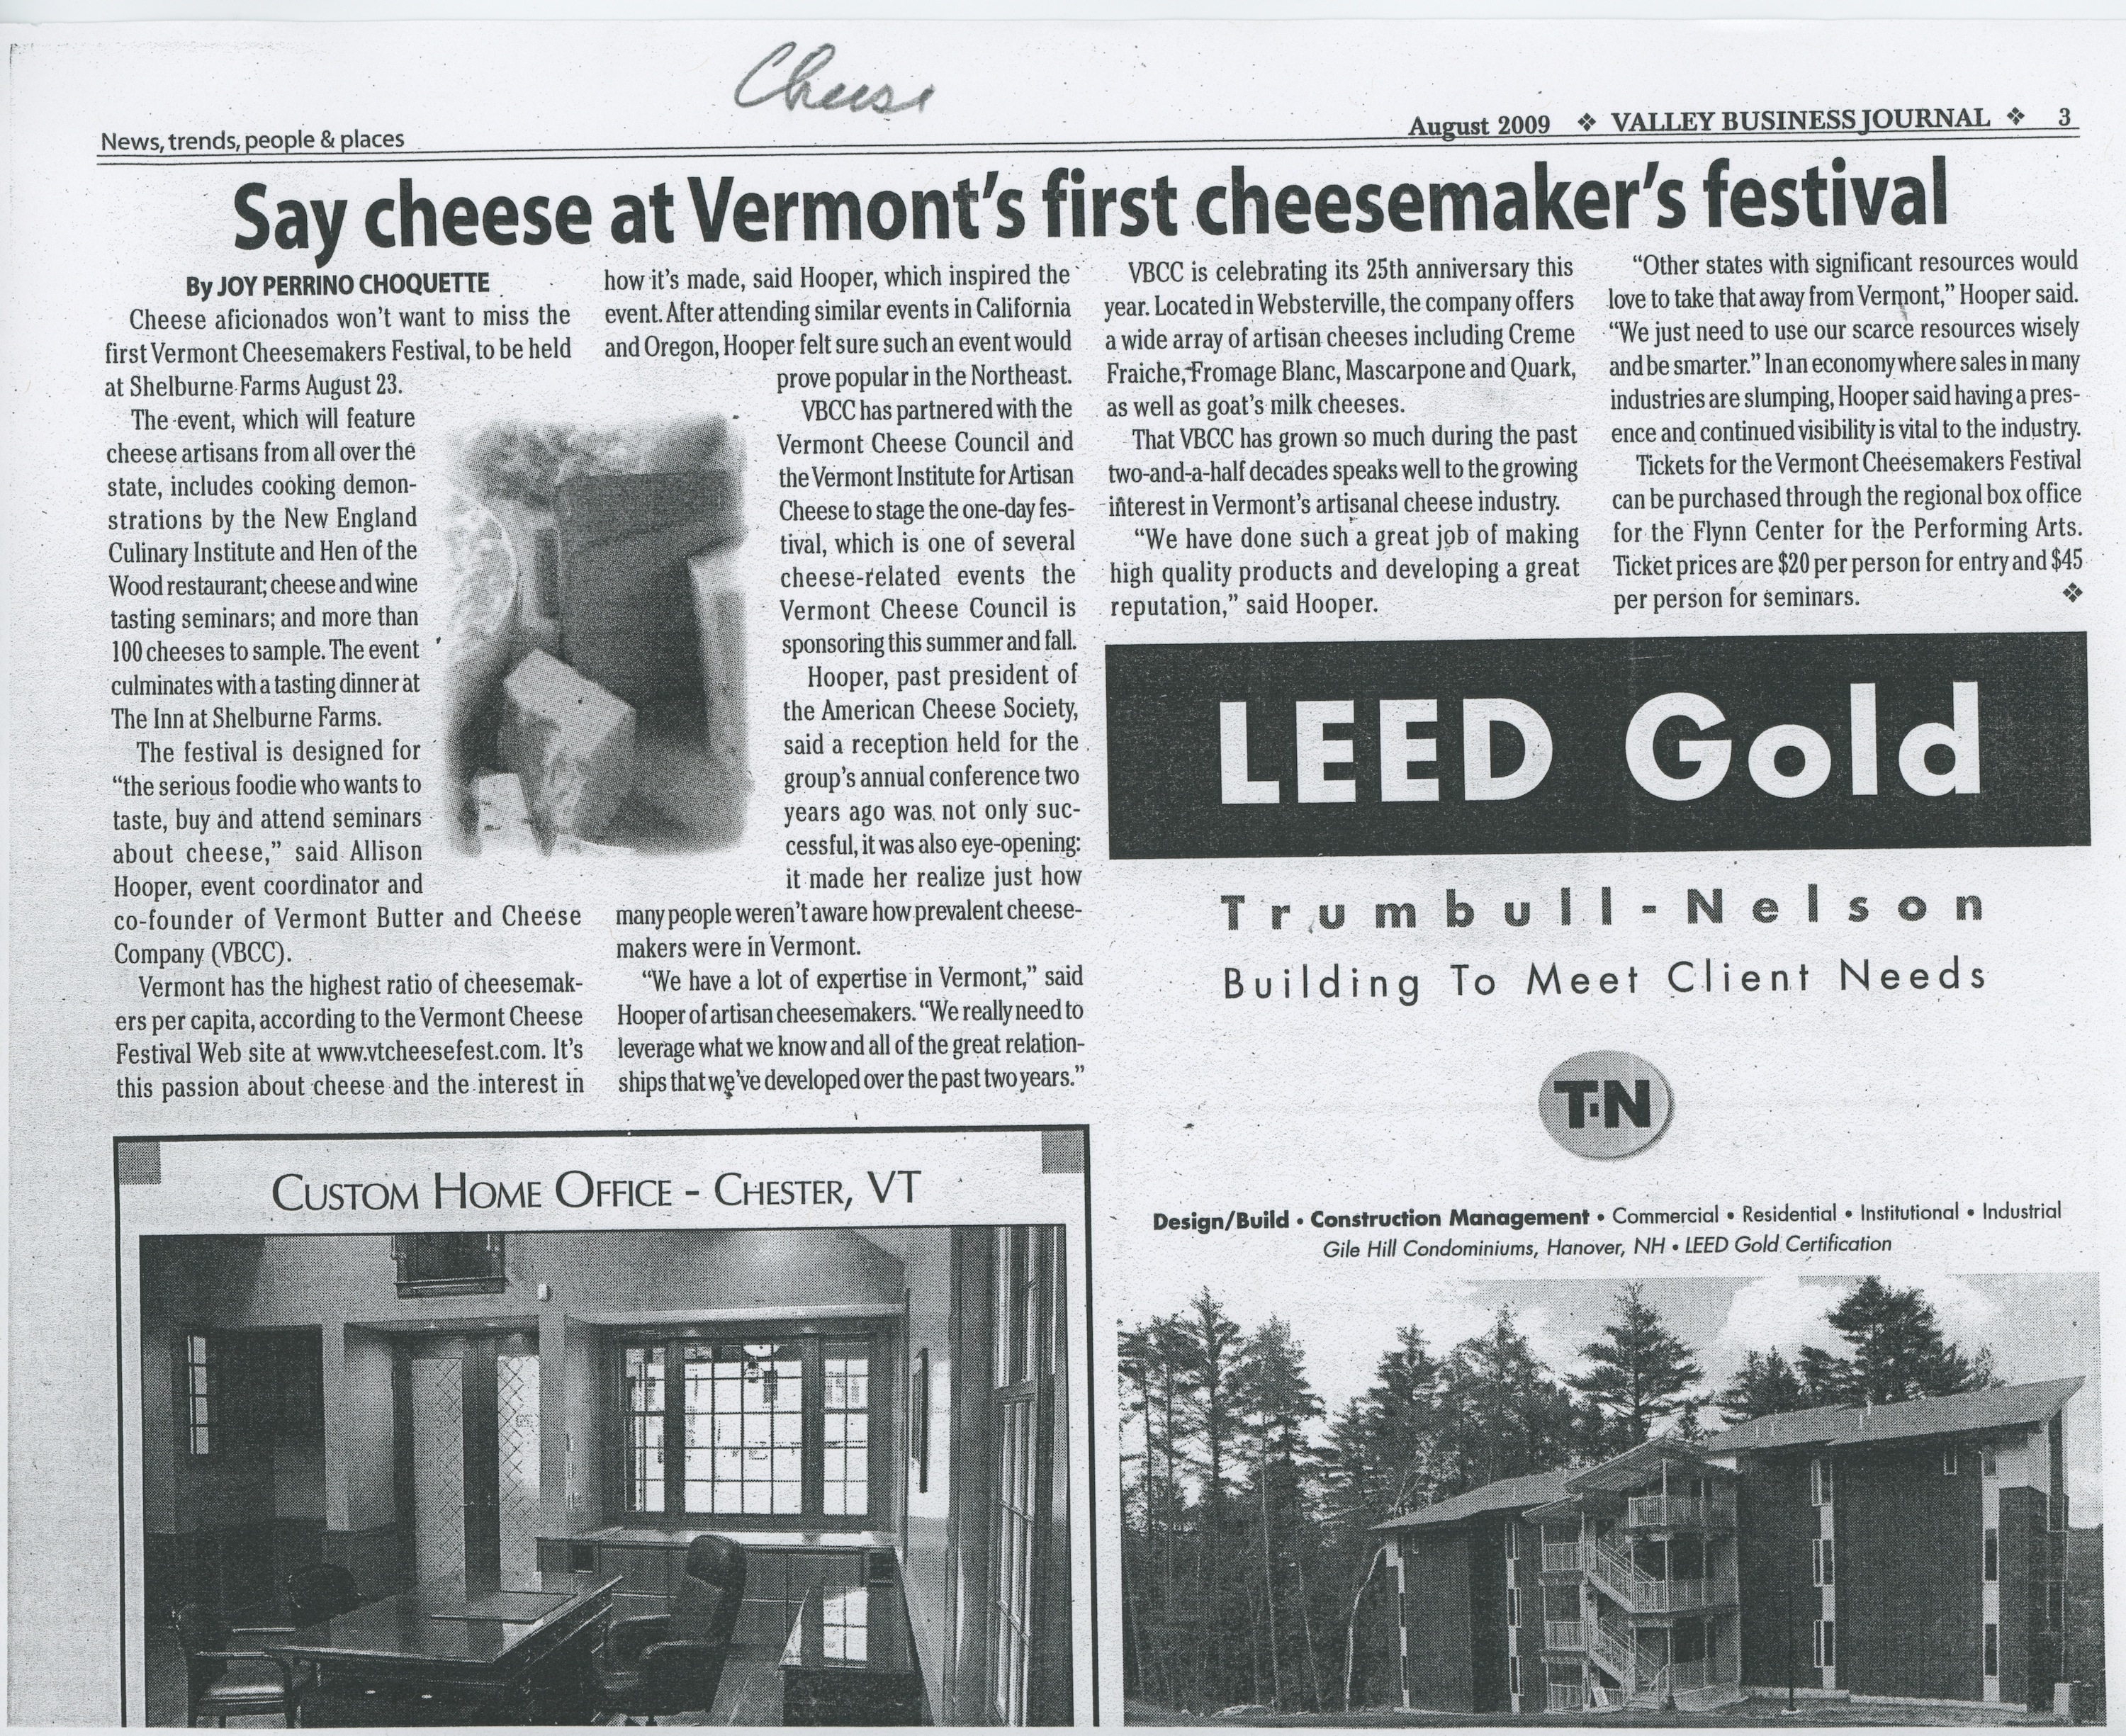 Say cheese at Vermont's first cheesemaker's festival